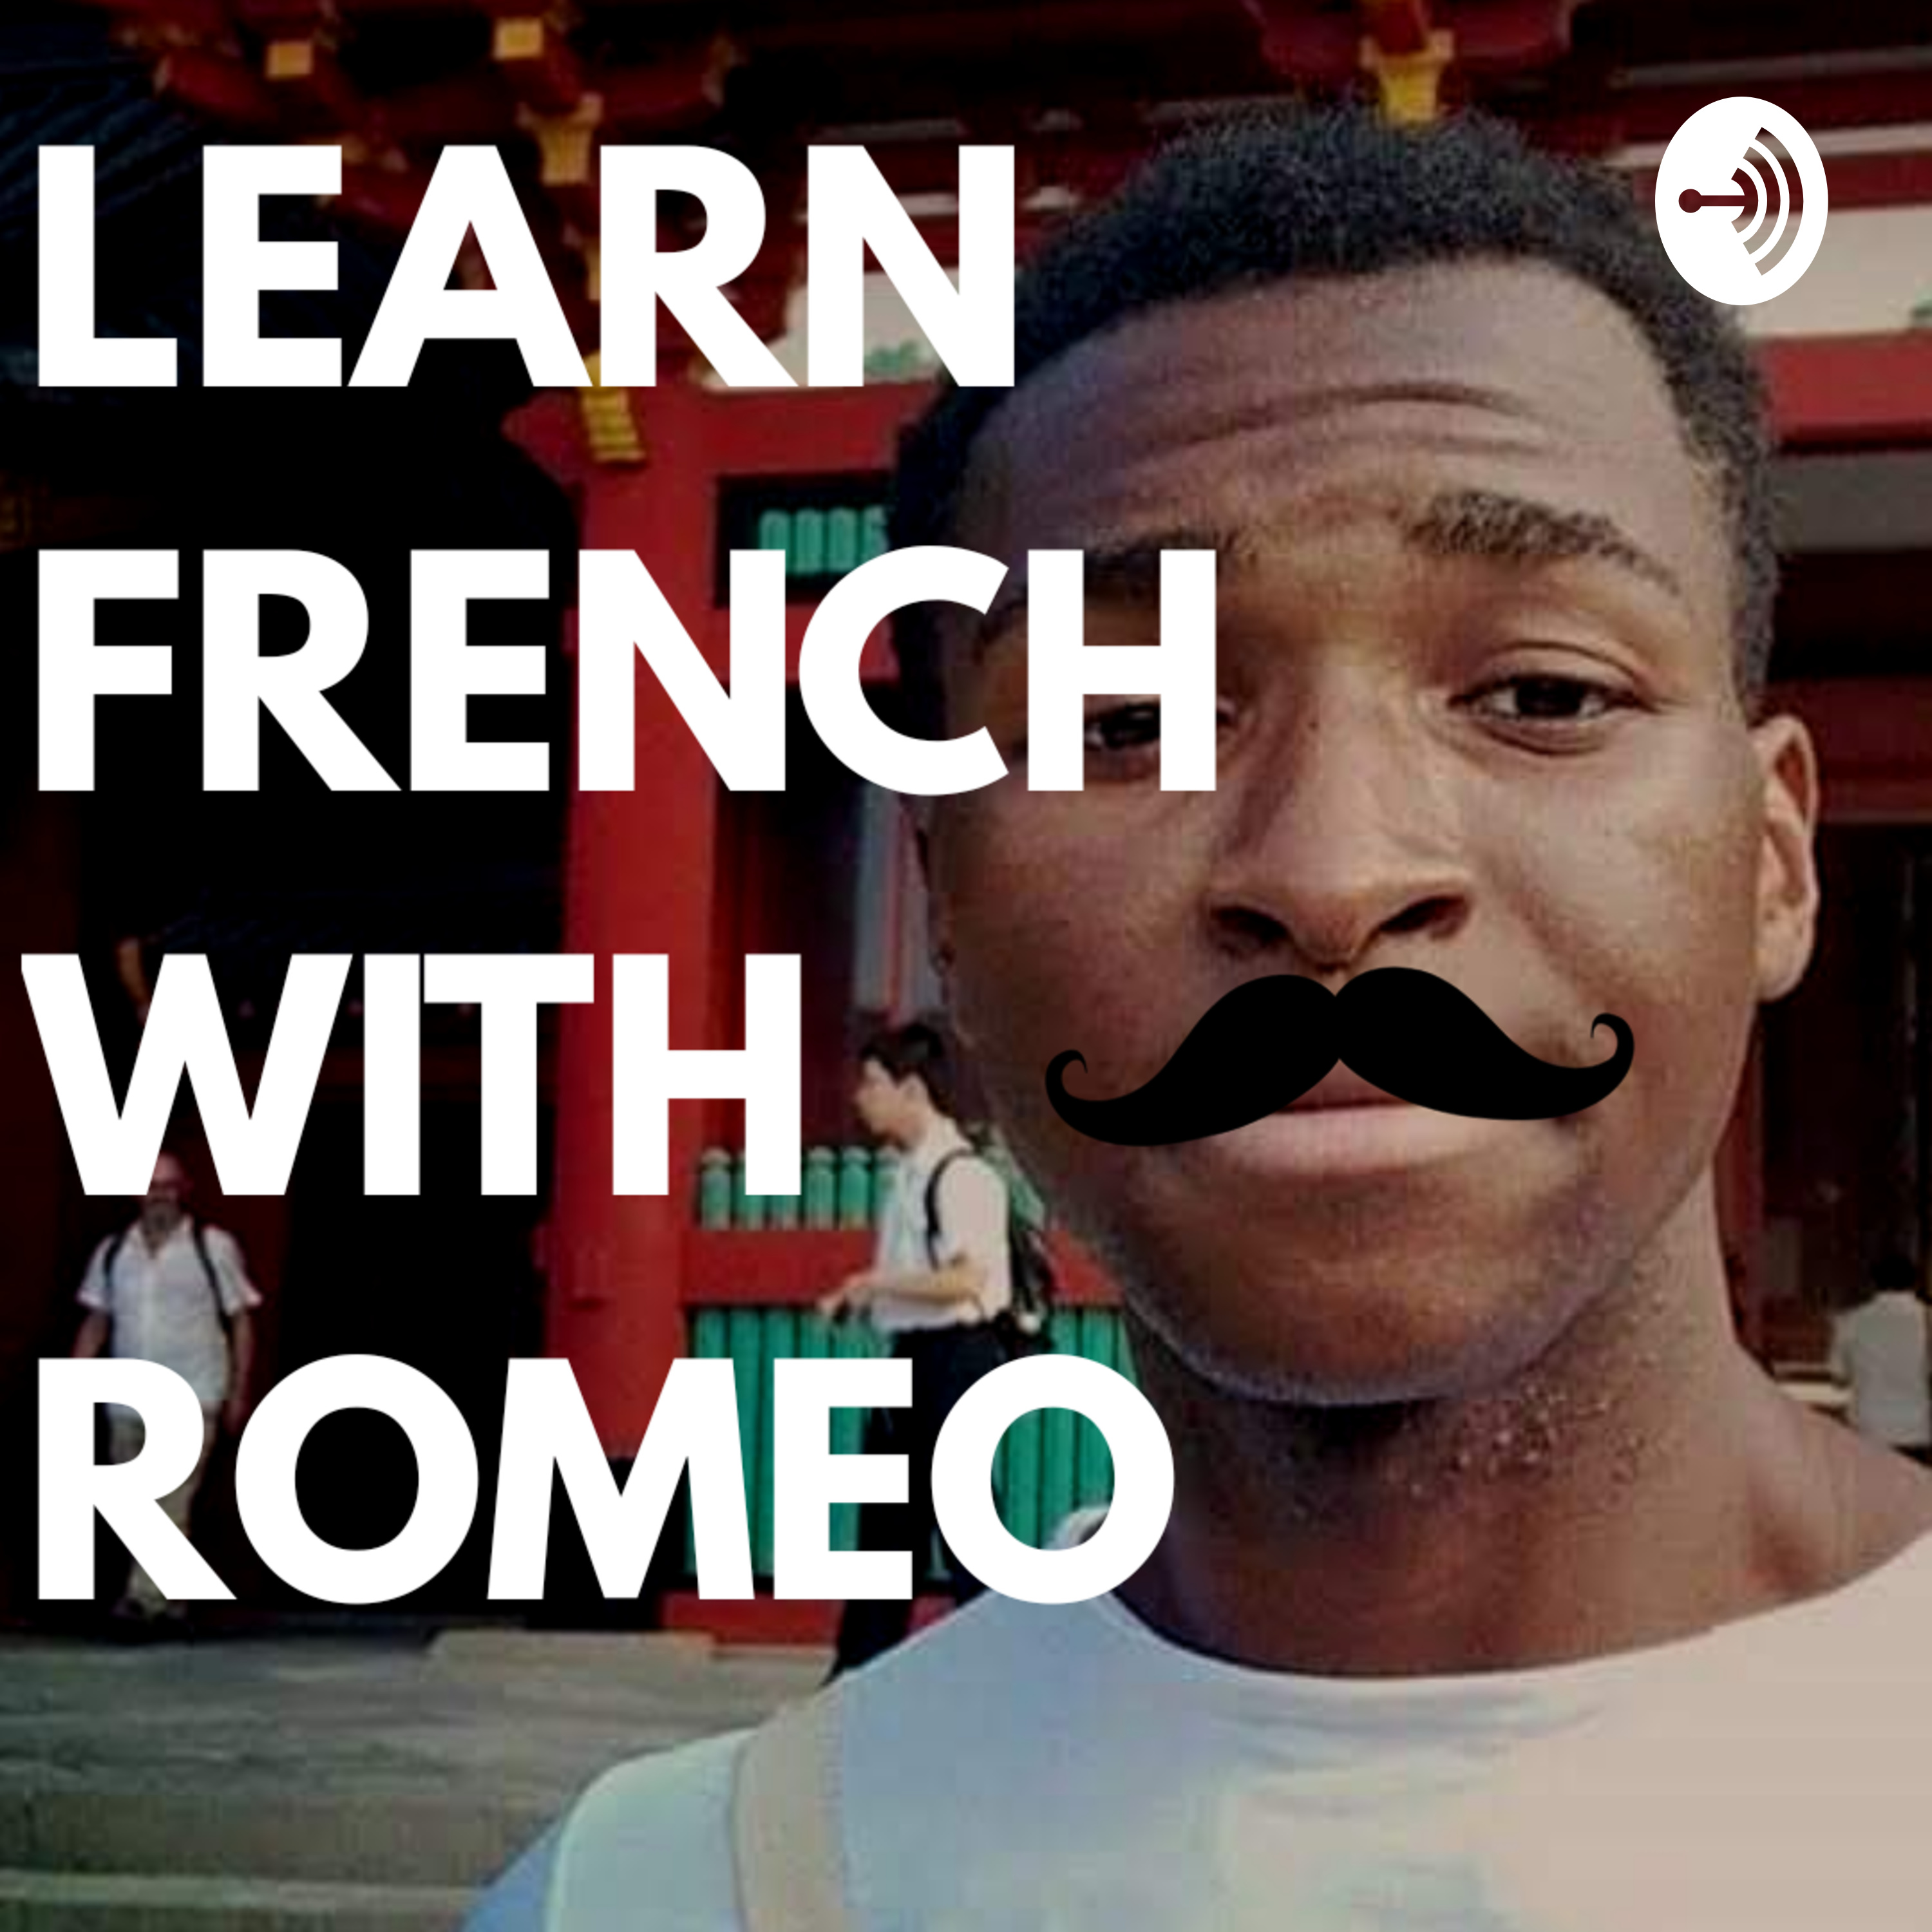 Learn French With Stories: Mon premier jour chez Mcdo